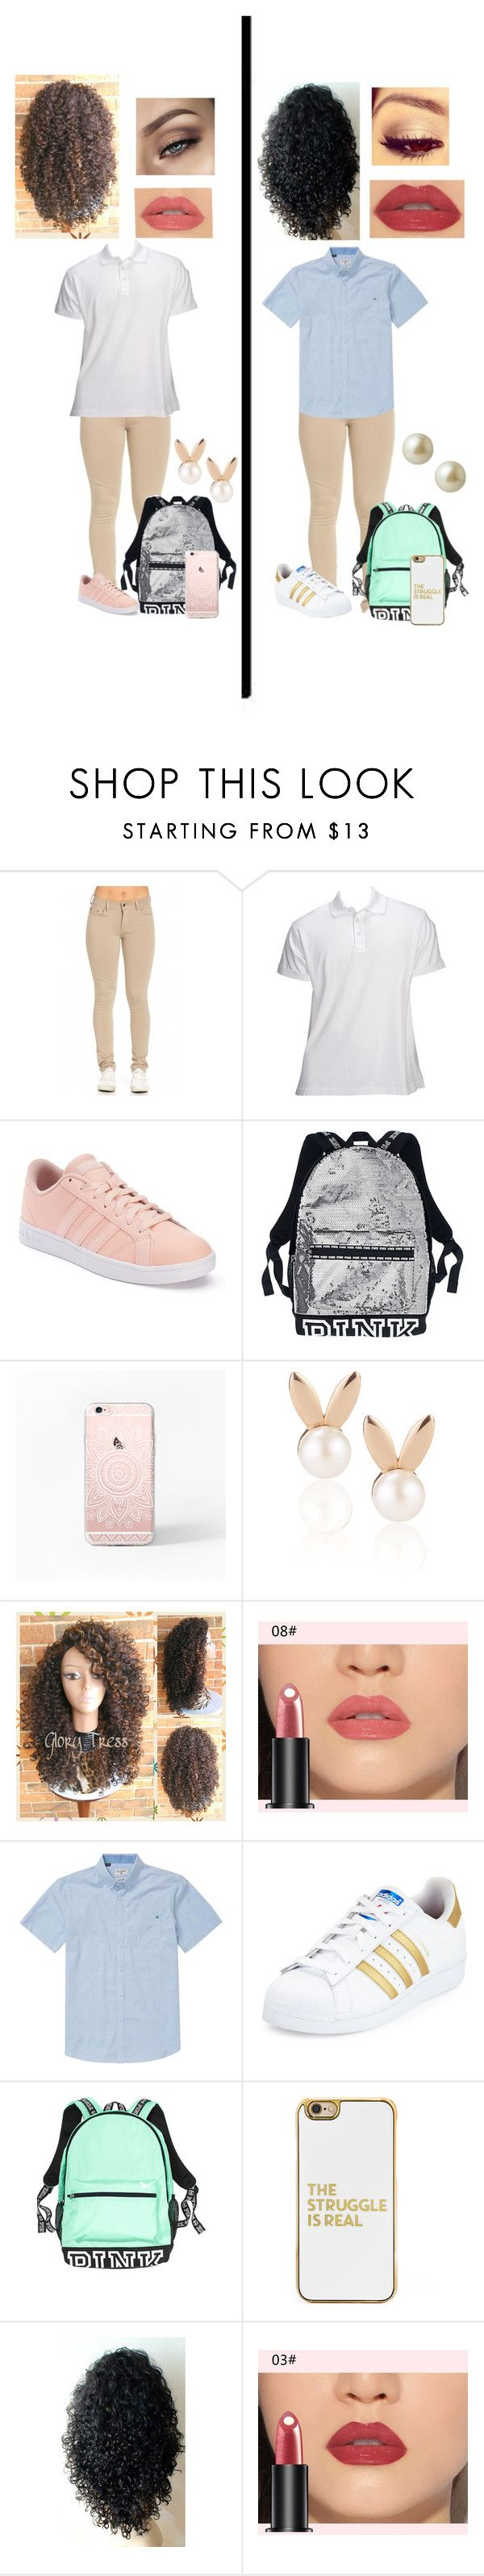 """Back to School (Uniform)"" by angelforevernalways ❤ liked on Polyvore featuring 5.11 Tactical, adidas, Aamaya by priyanka, Billabong, BaubleBar and Carolee"